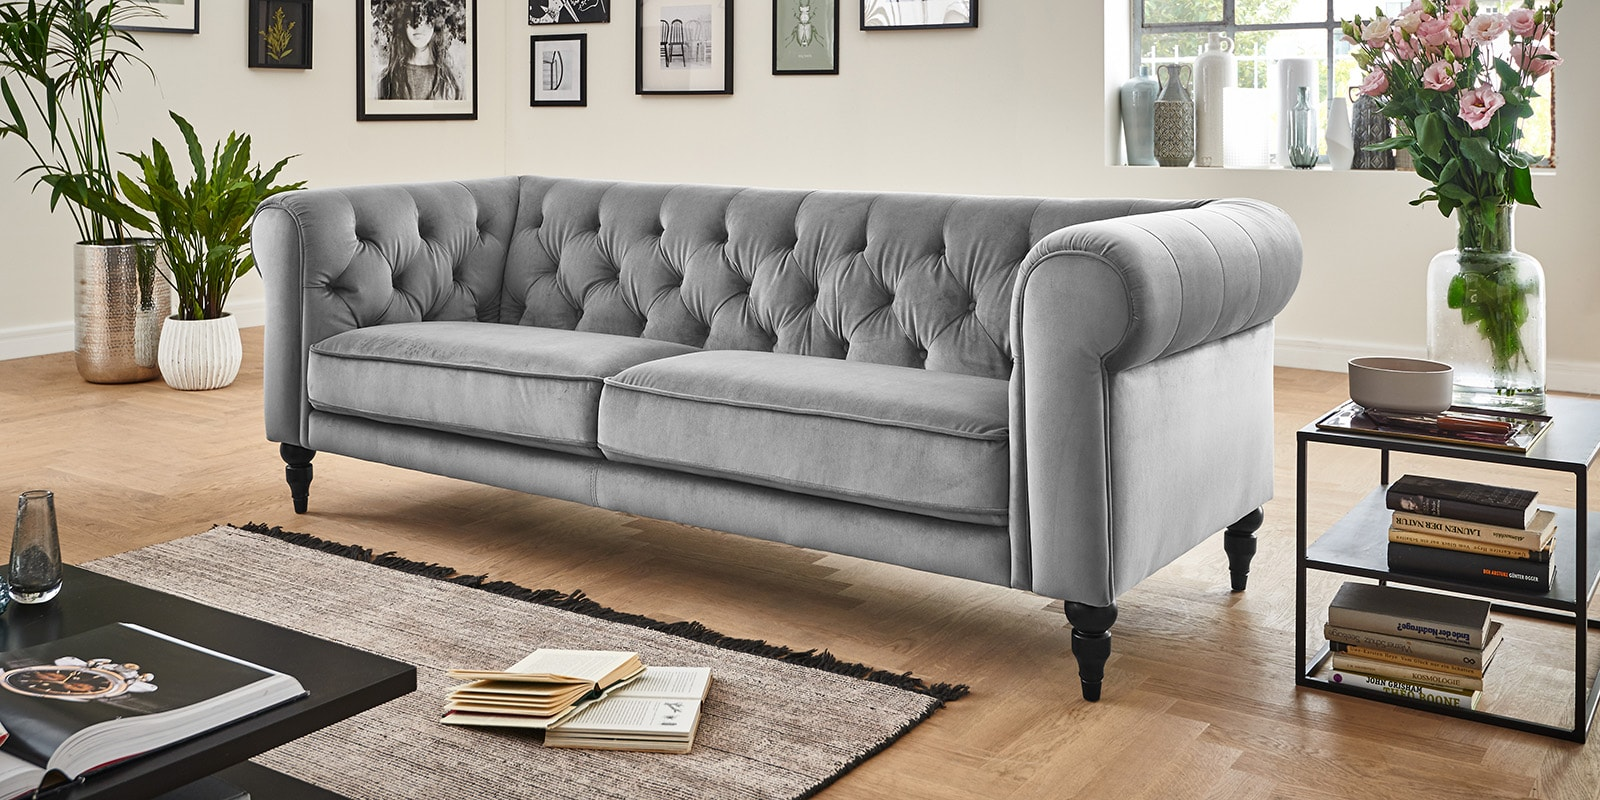 Full Size of Chesterfield Bett Samt Grau Ecksofa Ebay Caseconradcom Bette Floor Holz 190x90 Sonoma Eiche 140x200 180x200 Weiß Clinique Even Better Foundation Bock Betten Wohnzimmer Chesterfield Bett Samt Grau